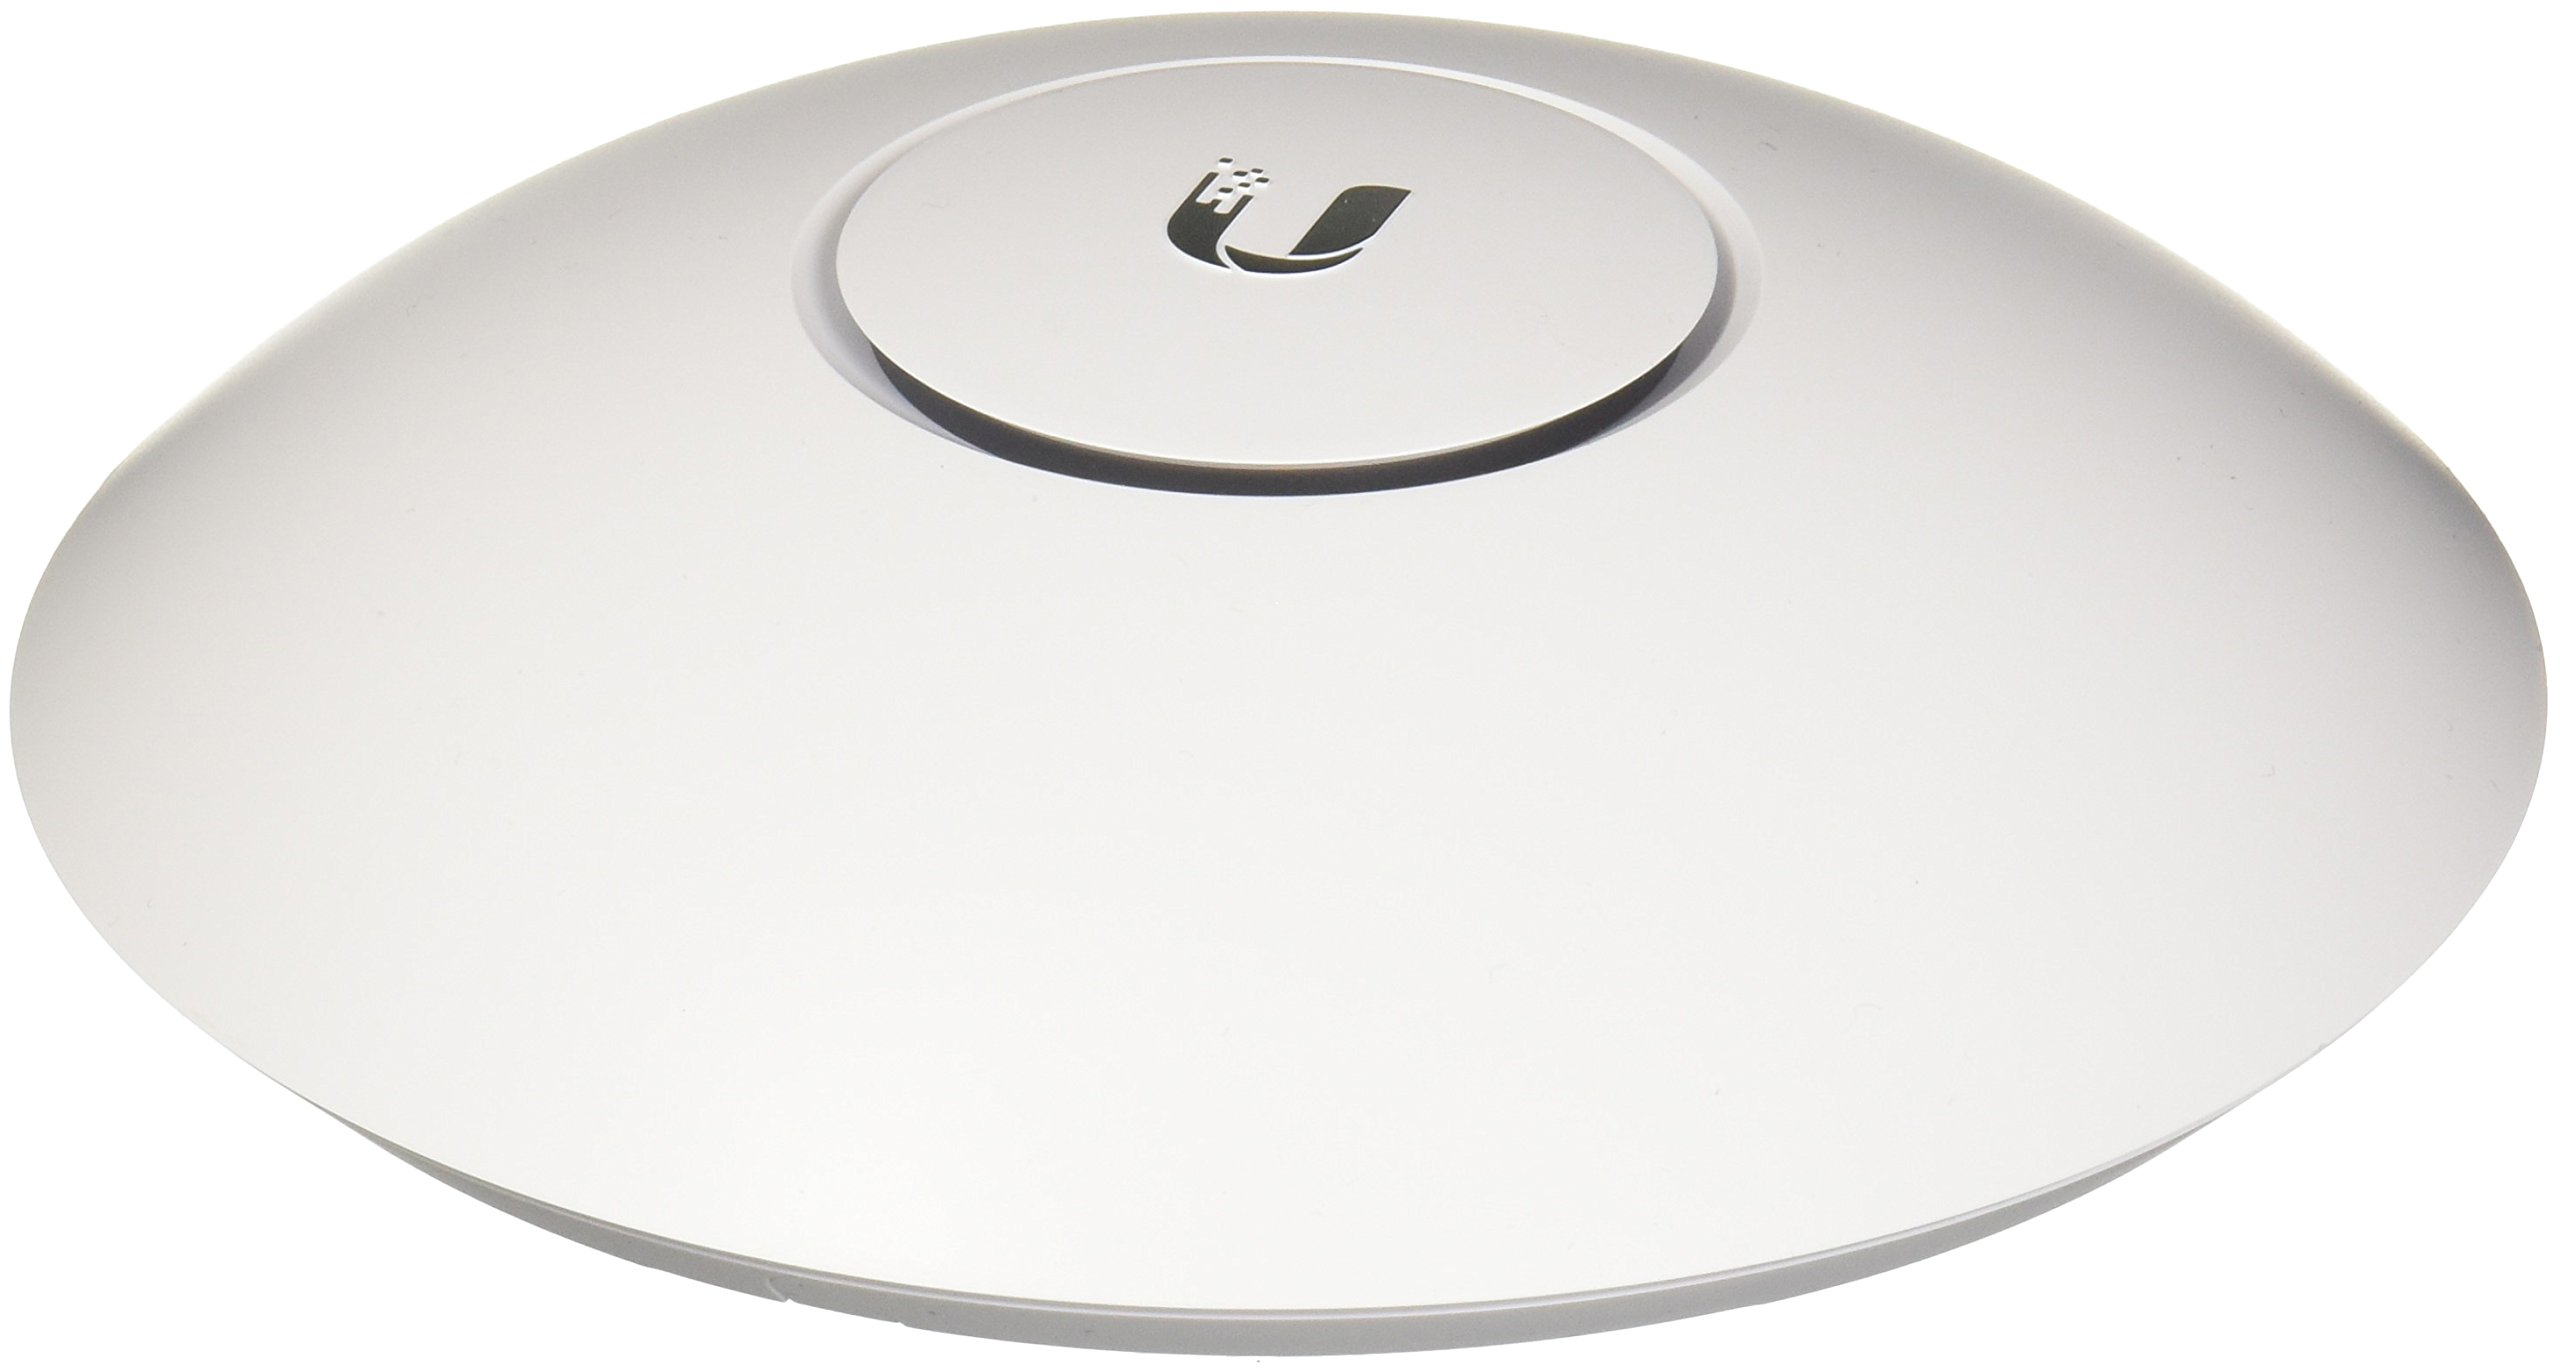 Ubiquiti Unifi Ap-AC Long Range - Wireless Access Point - 802.11 B/A/G/n/AC (UAPACLR5US) by Ubiquiti Networks